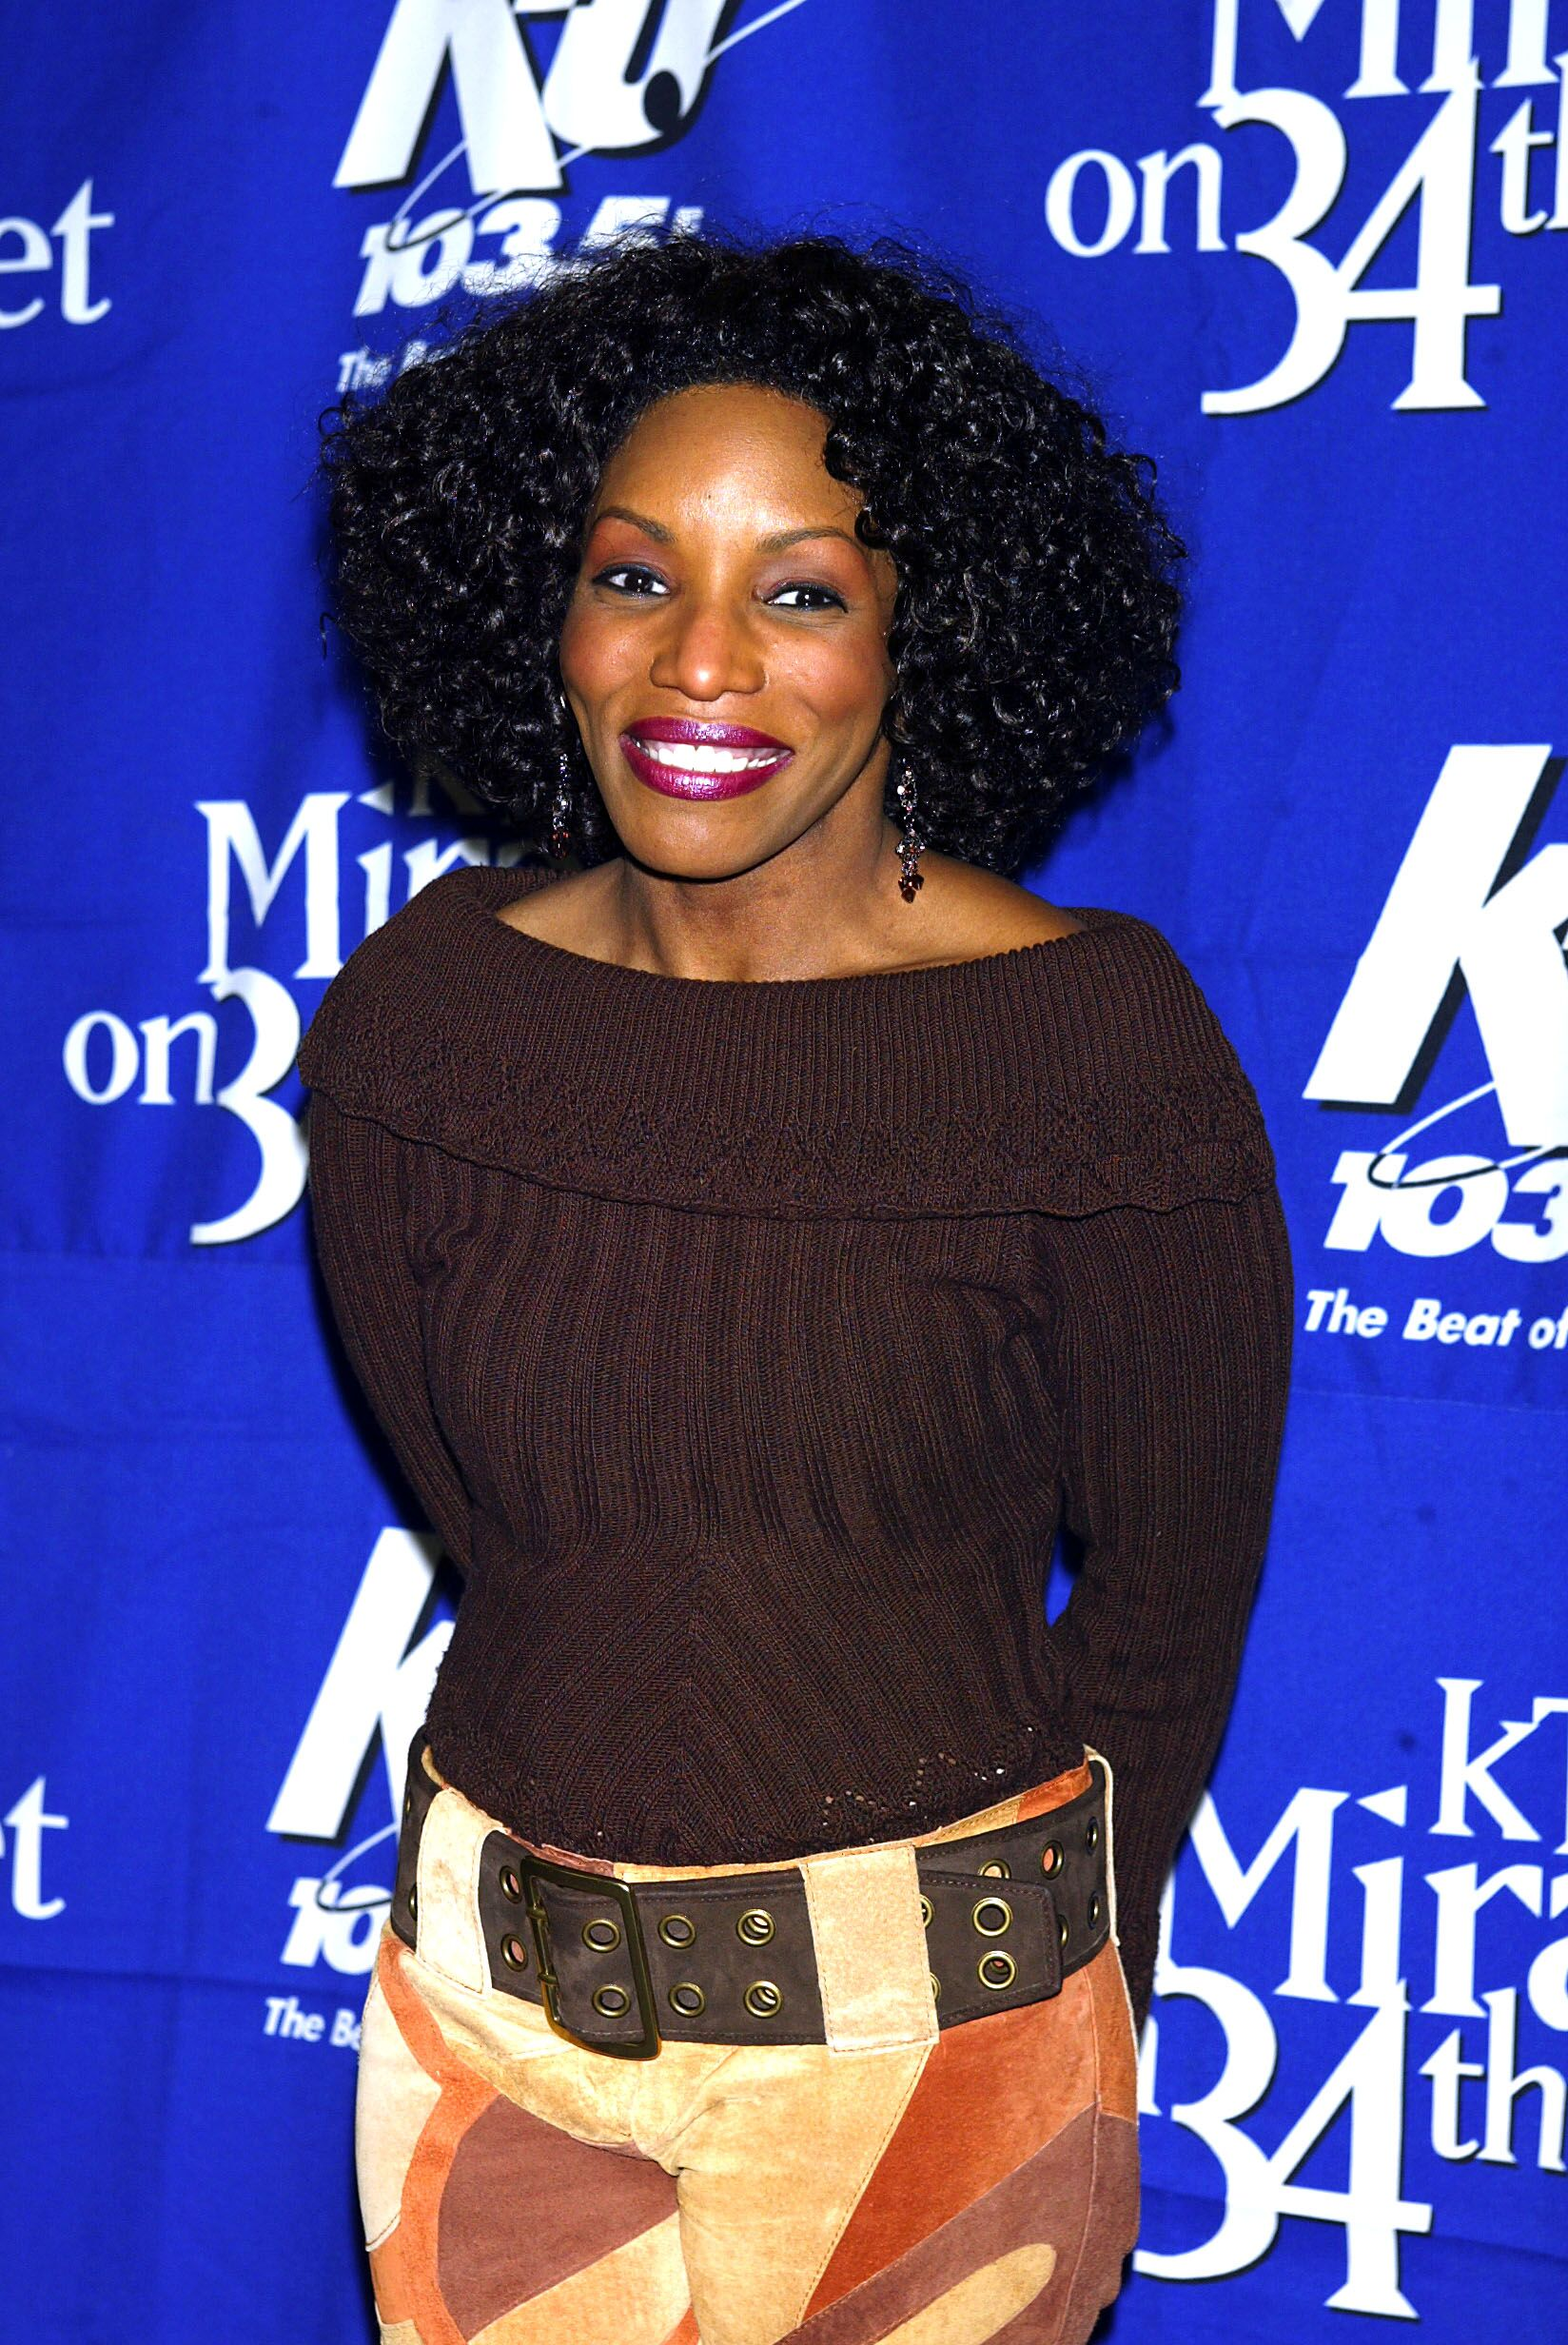 """Stephanie Mills backstage during """"KTU's Miracle on 34th Street"""" hoilday concert on December 18, 2002 in New York City 